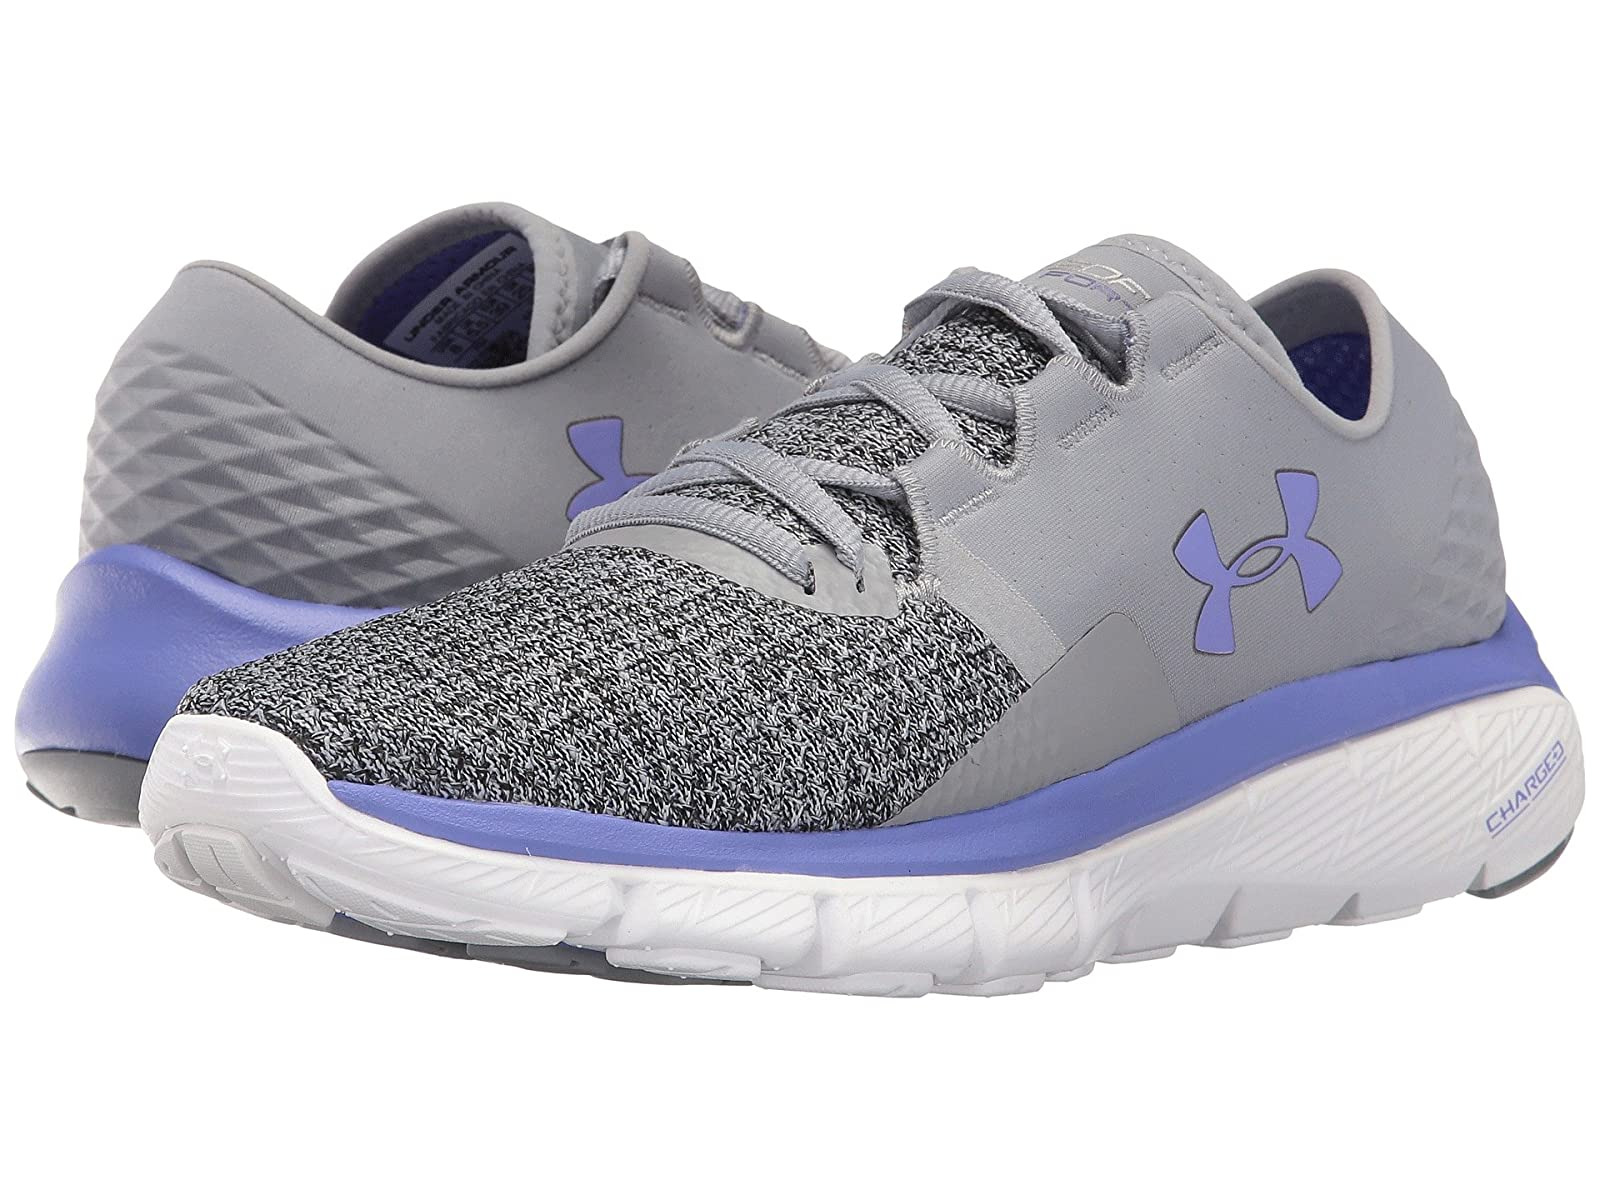 Under Armour UA Speedform Fortis 2 TXTRCheap and distinctive eye-catching shoes